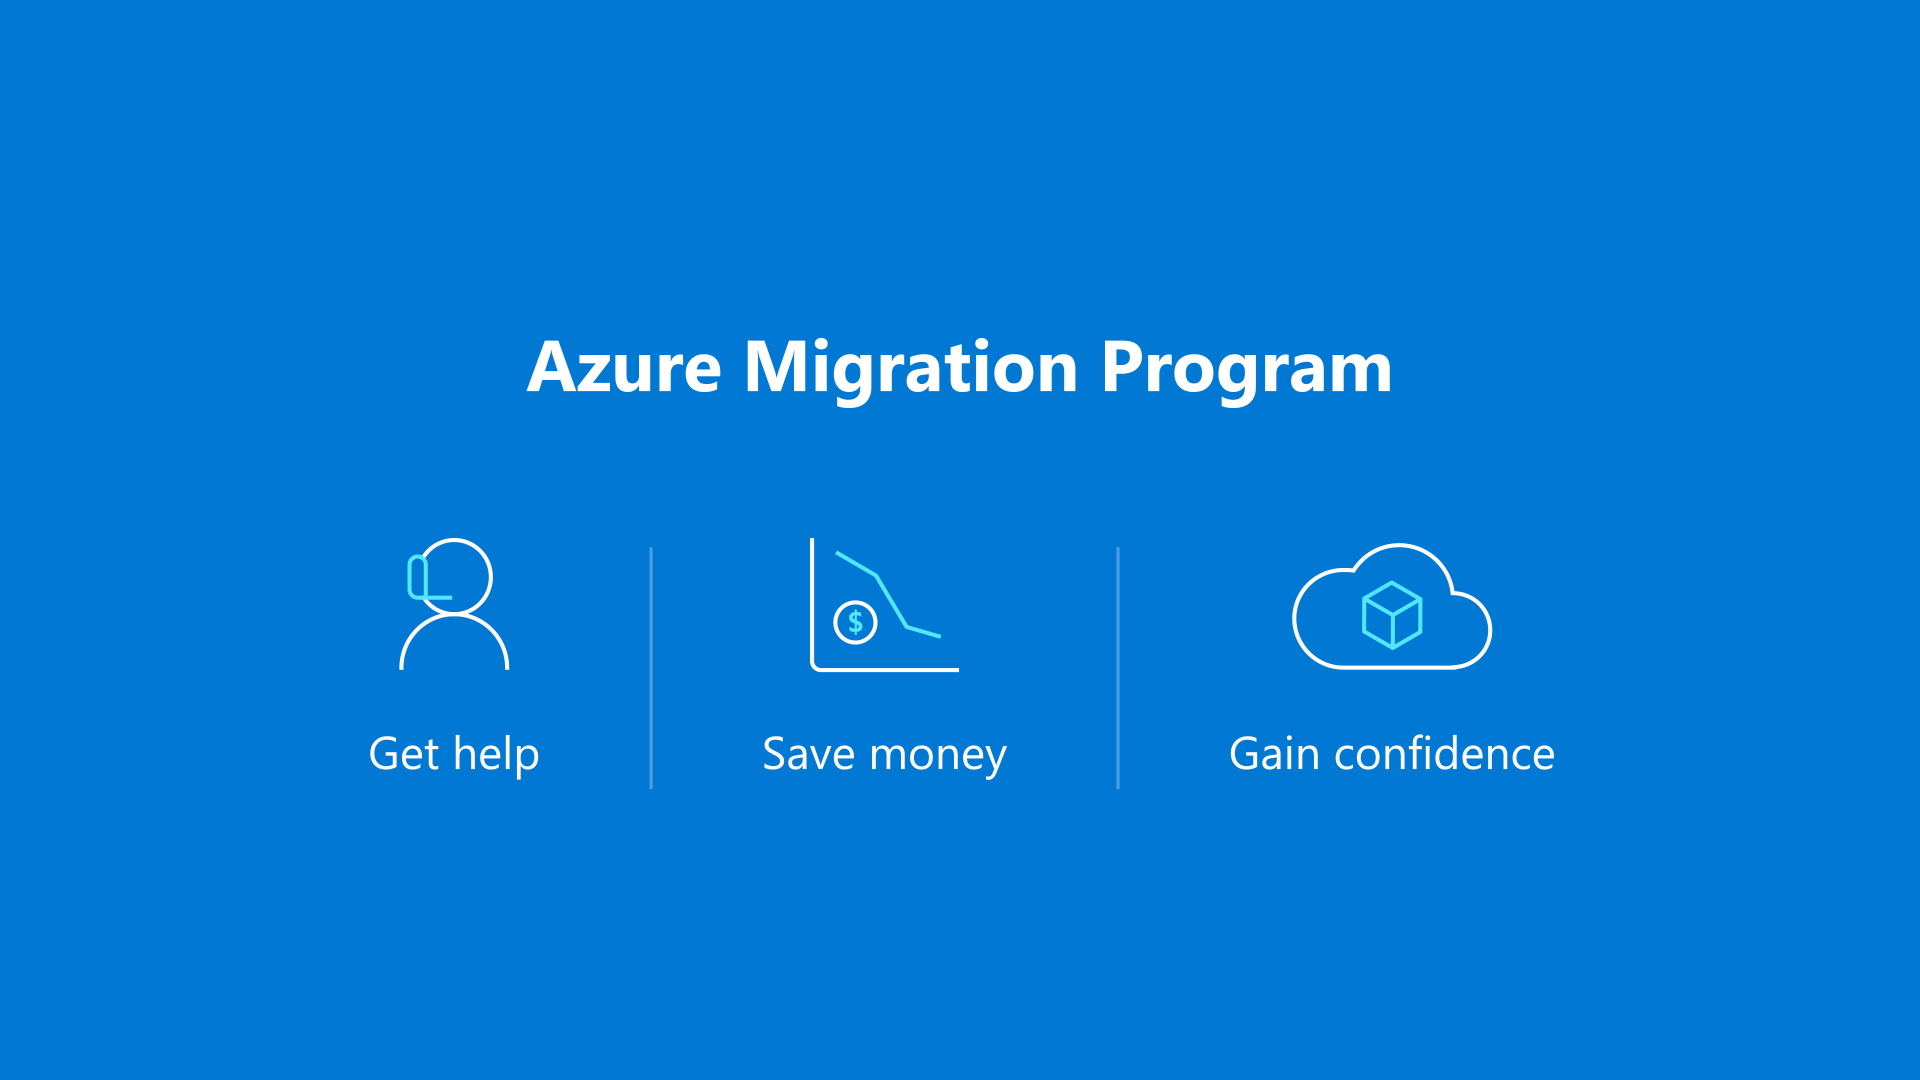 Azure Migration Program overview